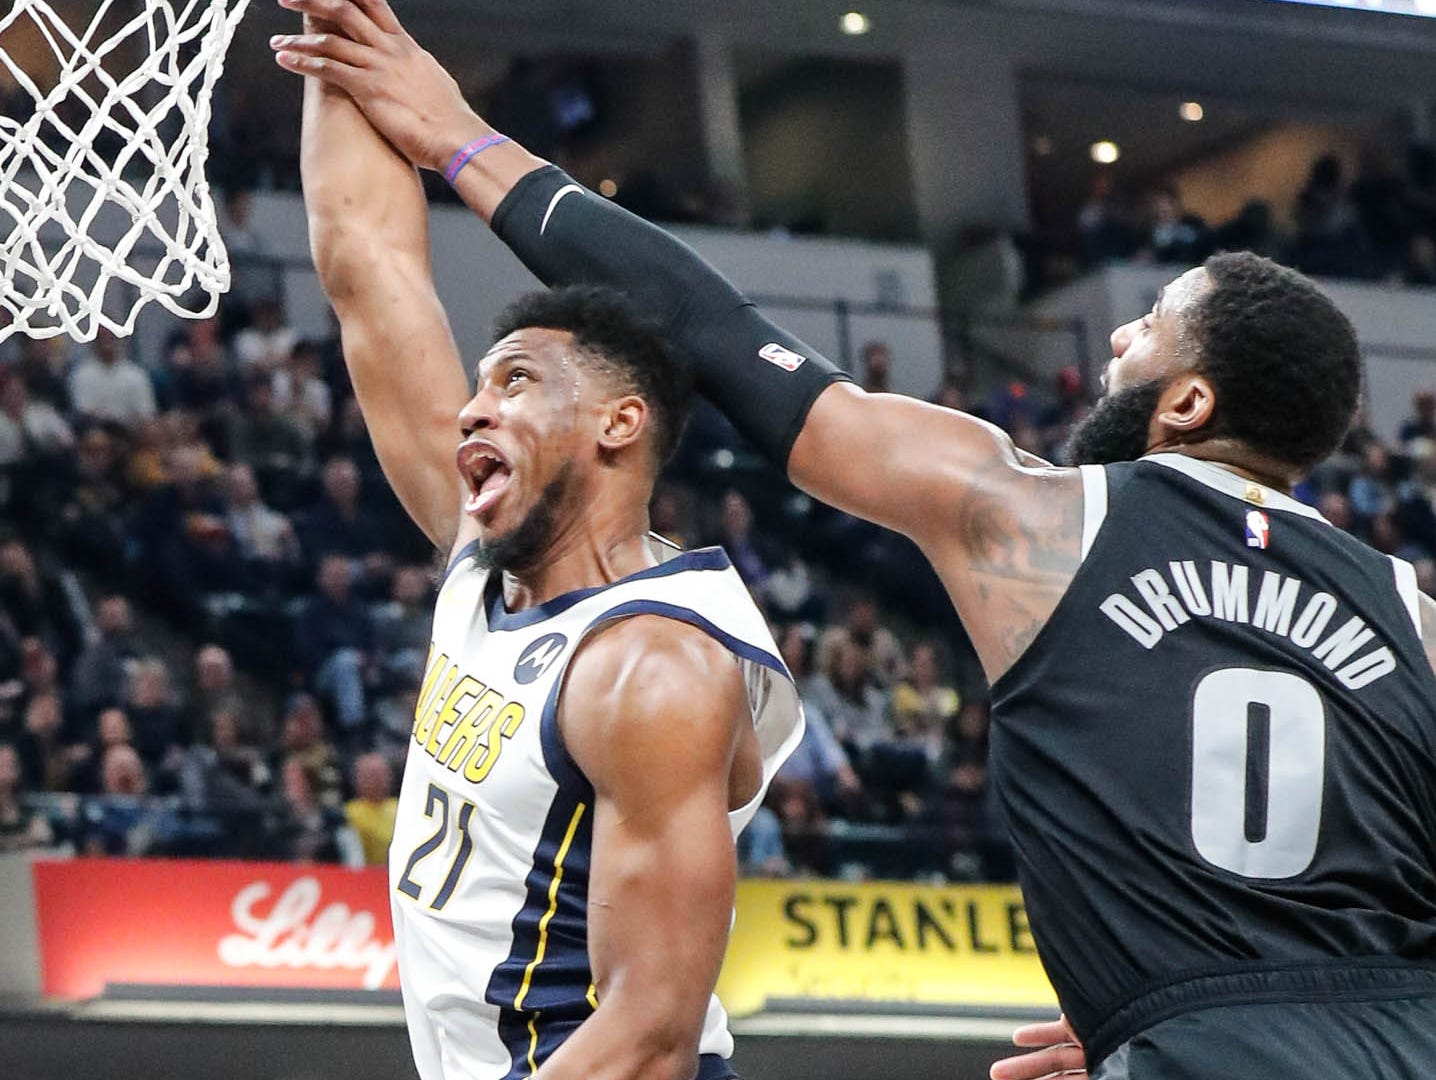 Detroit Piston's center Andre Drummond (0), attempts to block a shot by Indiana Pacer's forward Thaddeus Young (21), during a game between the Indiana Pacers and the Detroit Pistons at at Bankers Life Fieldhouse in Indianapolis on Friday, Dec. 28, 2018.